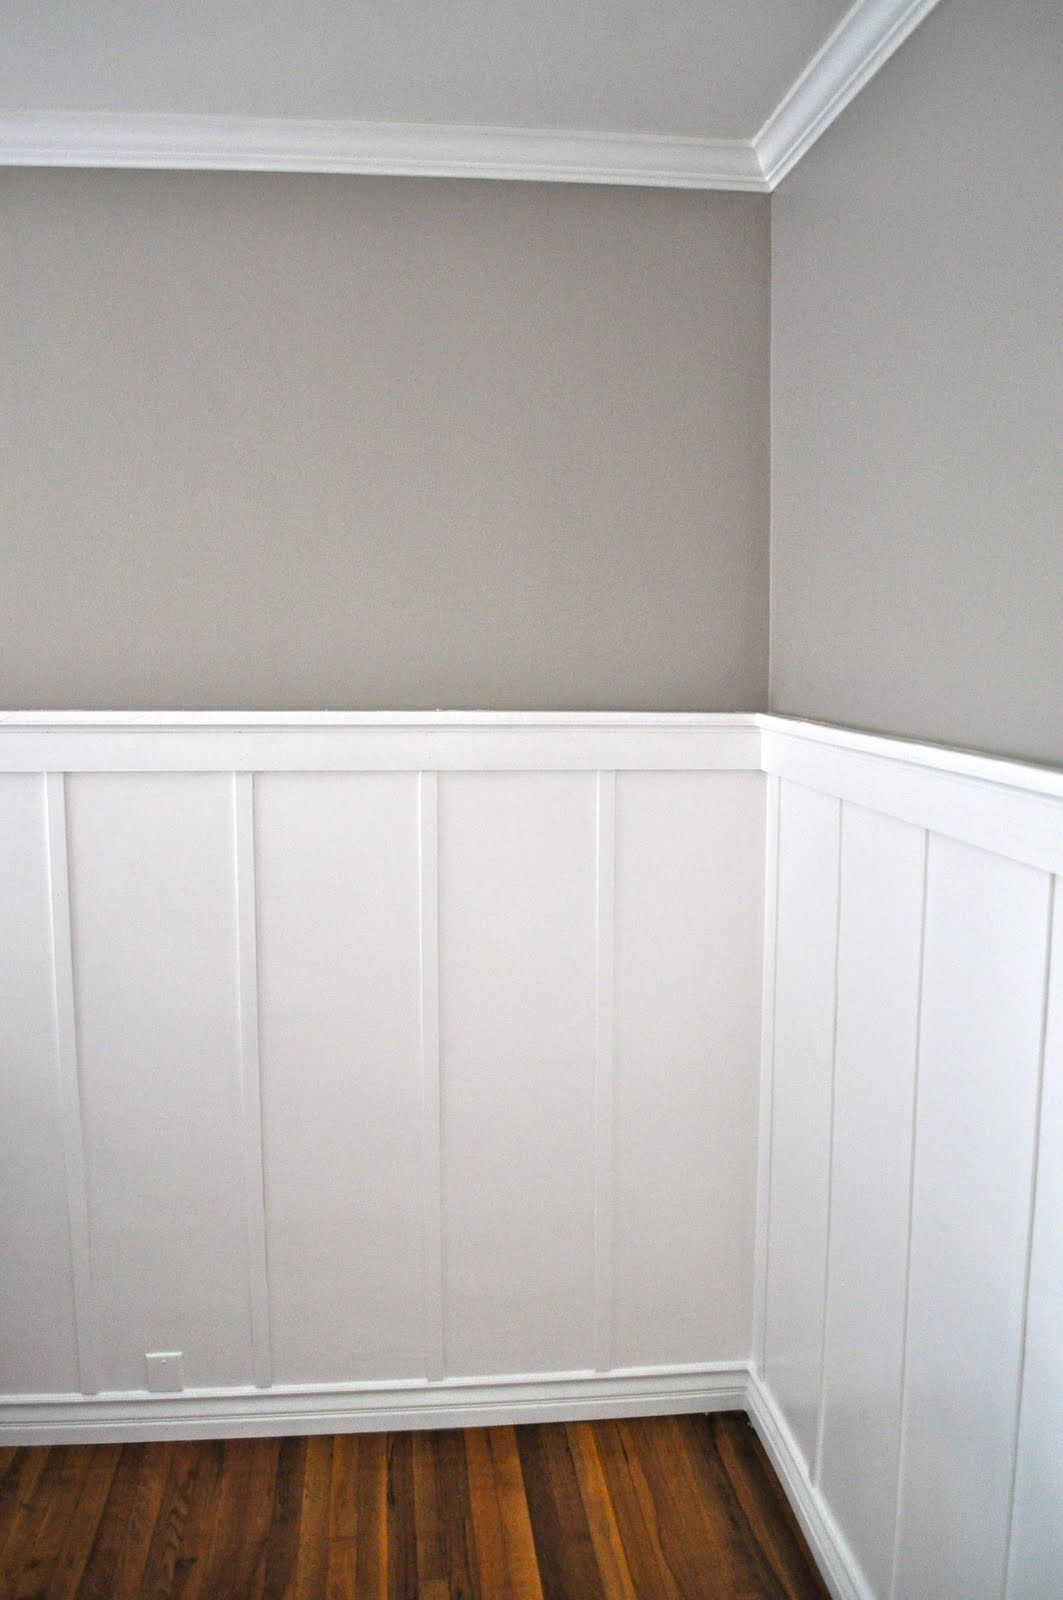 Half Wall Wood Paneling: Board And Batten. I Like The Different Baseboard With A